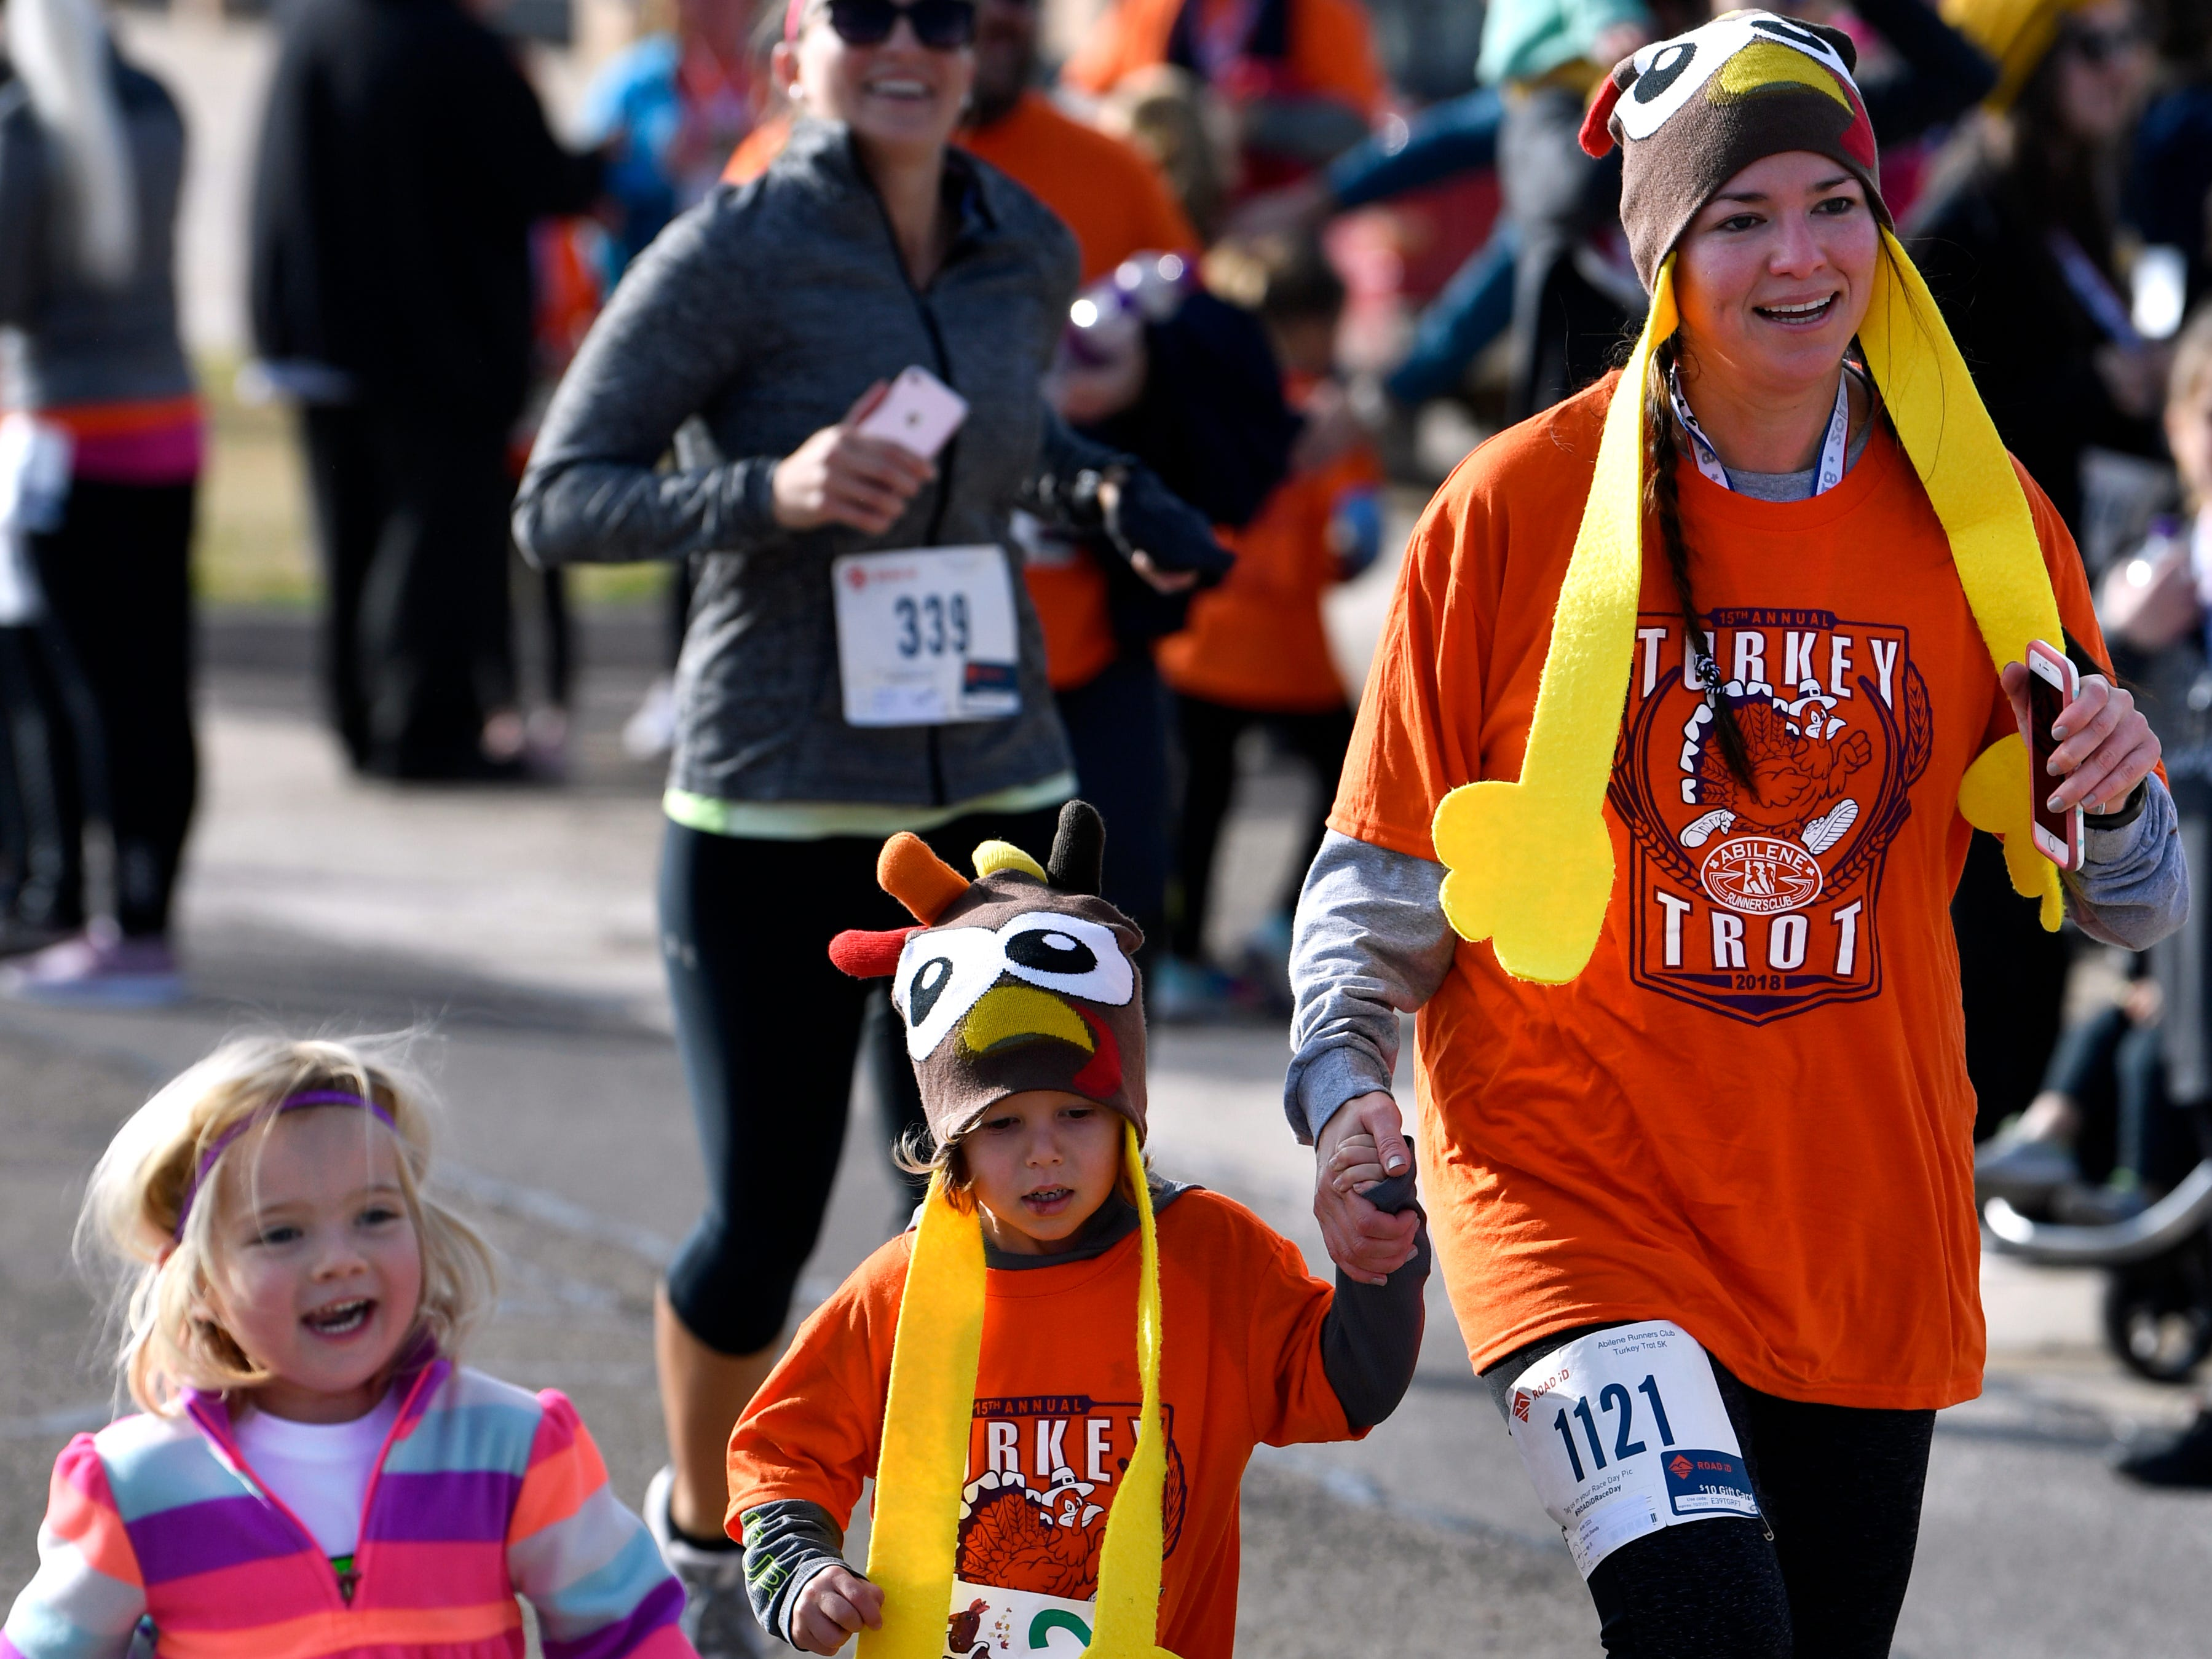 "Maizey Hughes, 3, joins Shandy Sarchet, and her 4-year-old son Corbyn as they finish the one-mile fun-run during the Abilene Turkey Trot Thursday Nov. 22, 2018. The course took the kids twice around Shotwell Stadium. Sponsored by the Abilene Runners Club, the larger Thanksgiving 5K course started at Shotwell, went through the adjacent Lytle neighborhood, then finished back at the stadium. Proceeds benefited the West Texas Rehab Center and the Abilene Runners Club; their motto for the day was, ""Walk/run 3.1 miles and eat guilt free the rest of the day!"""